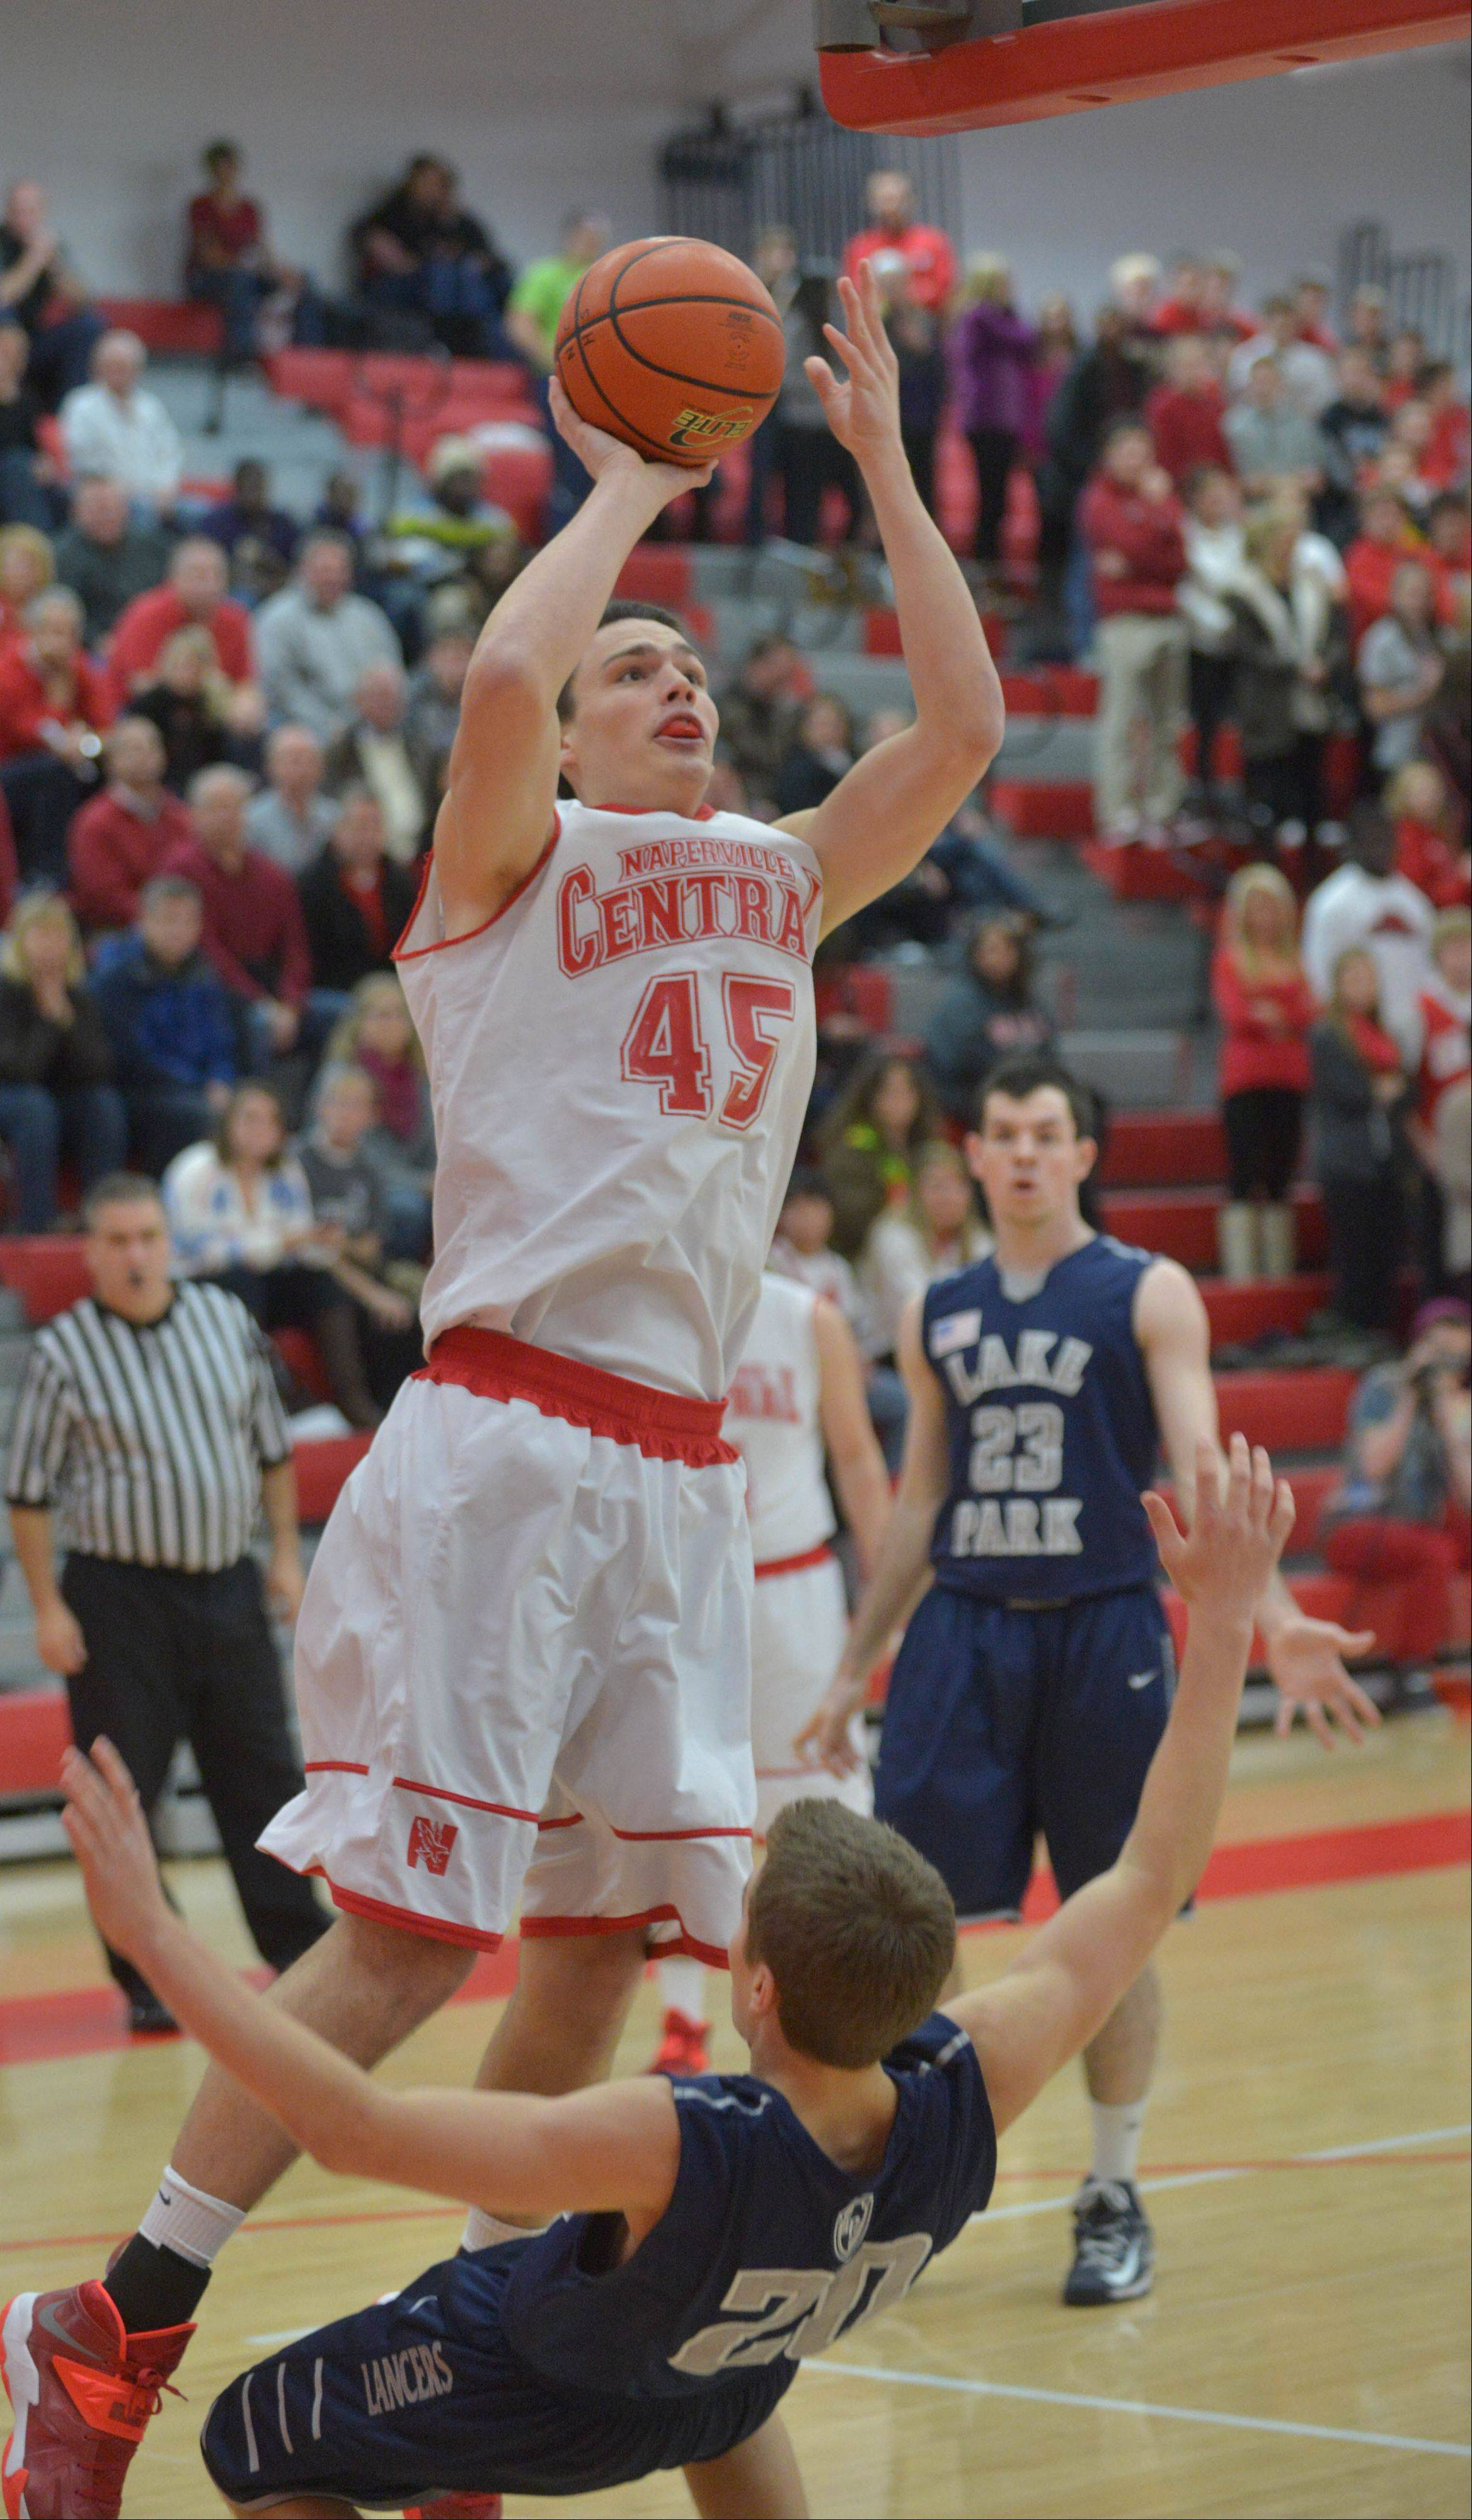 Nick Czarnowski of Naperville Central takes a shot during the Lake Park at Naperville Central boys basketball game Friday.